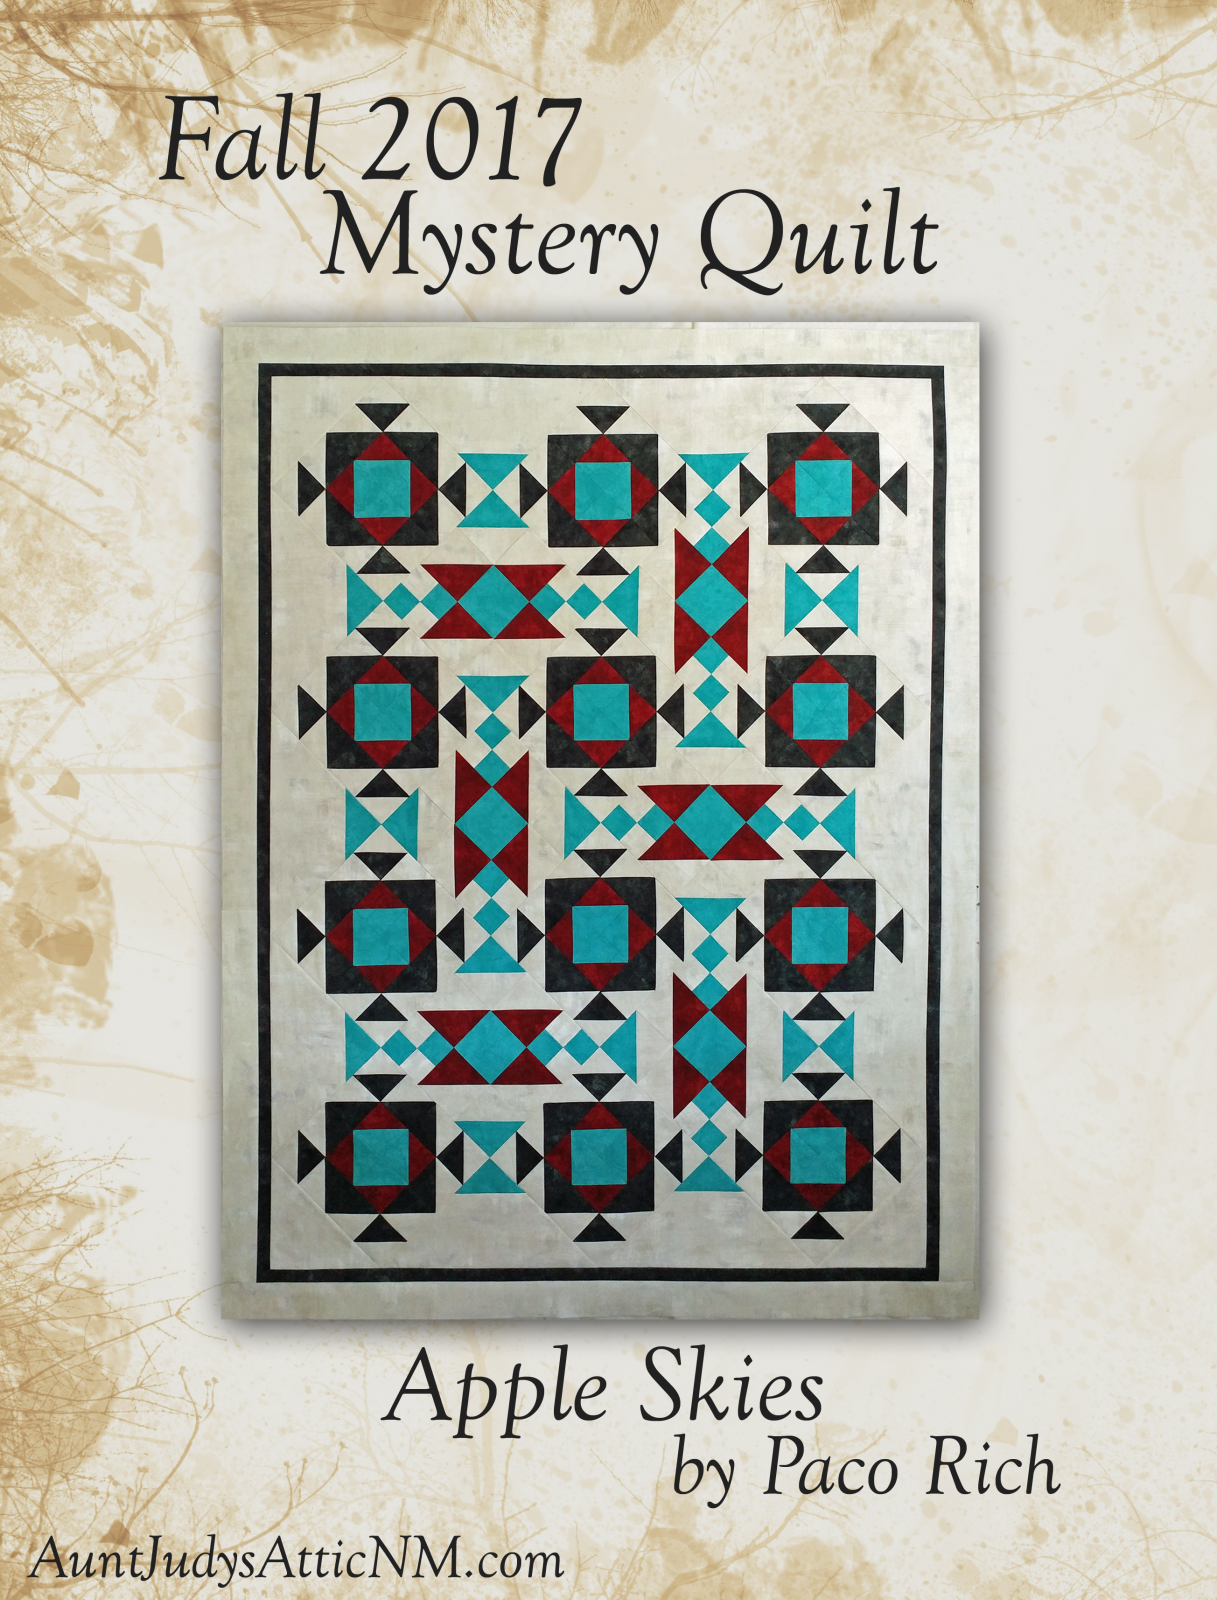 Apple Skies Mystery Quilt by Paco Rich